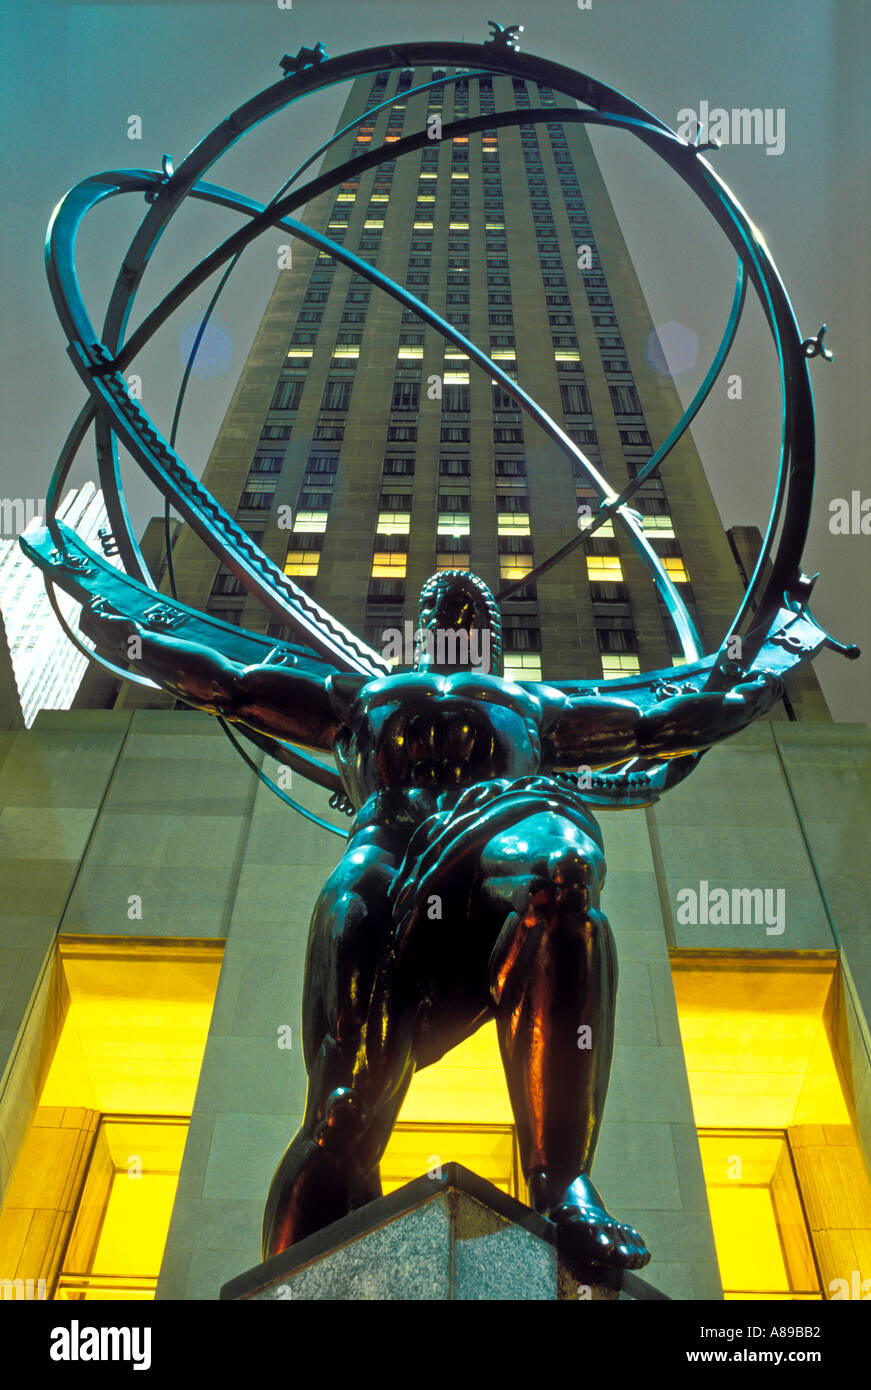 USA New York New York City Rockefeller Center Statue of Atlas - Stock Image